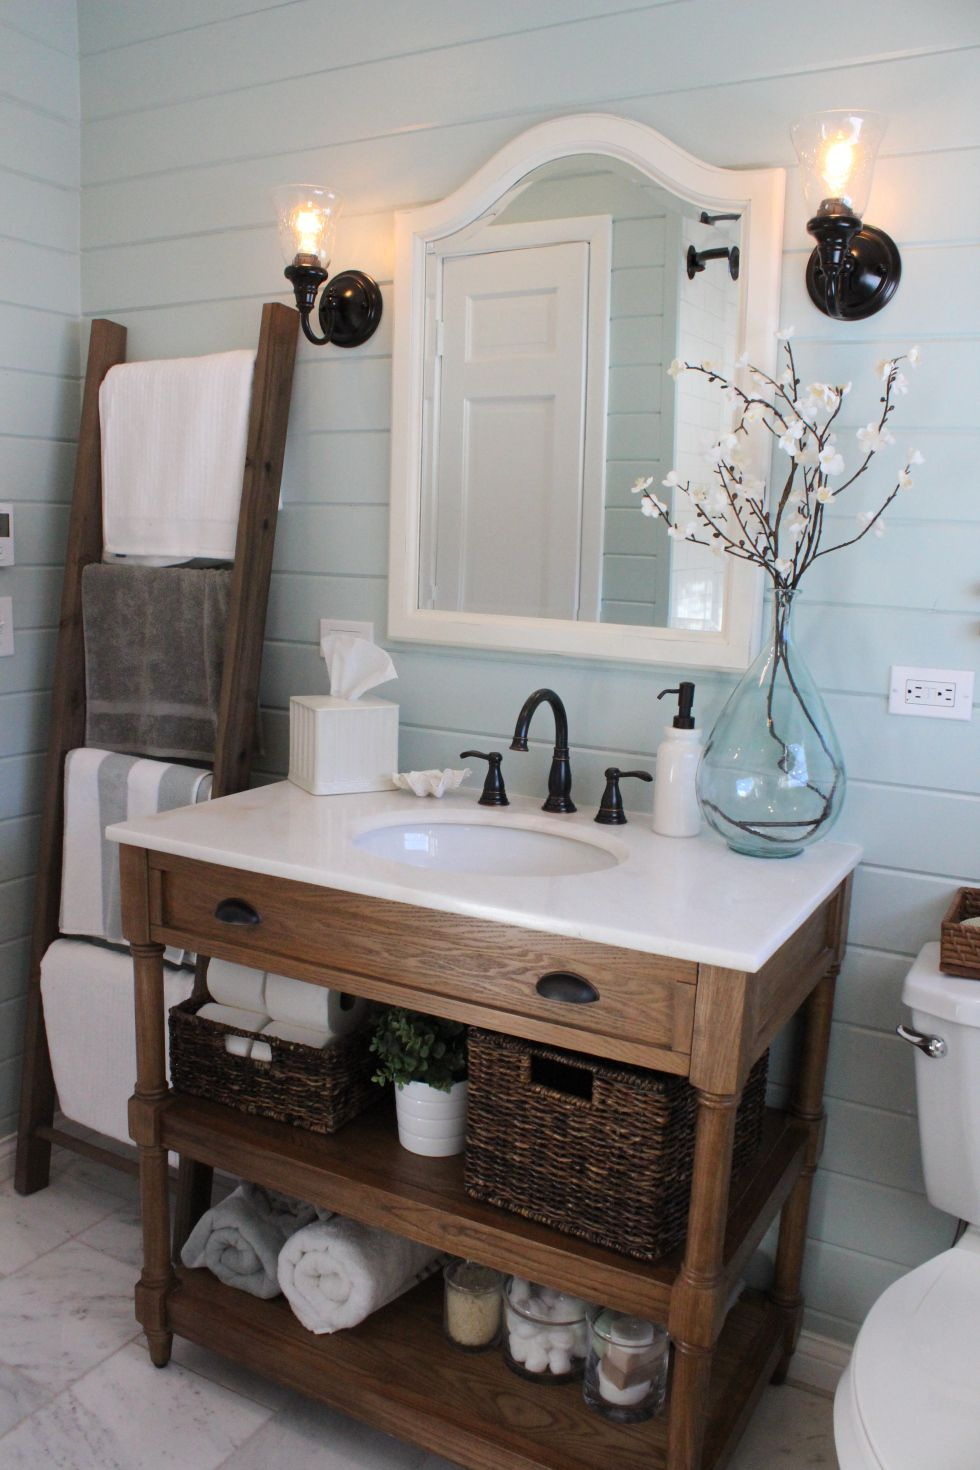 Explore Wood Plank Walls Bathroom Half Baths On Pinterest See More Ideas About Farmhouse Bathroom Decor Modern Farmhouse Bathroom Home Decor Inspiration